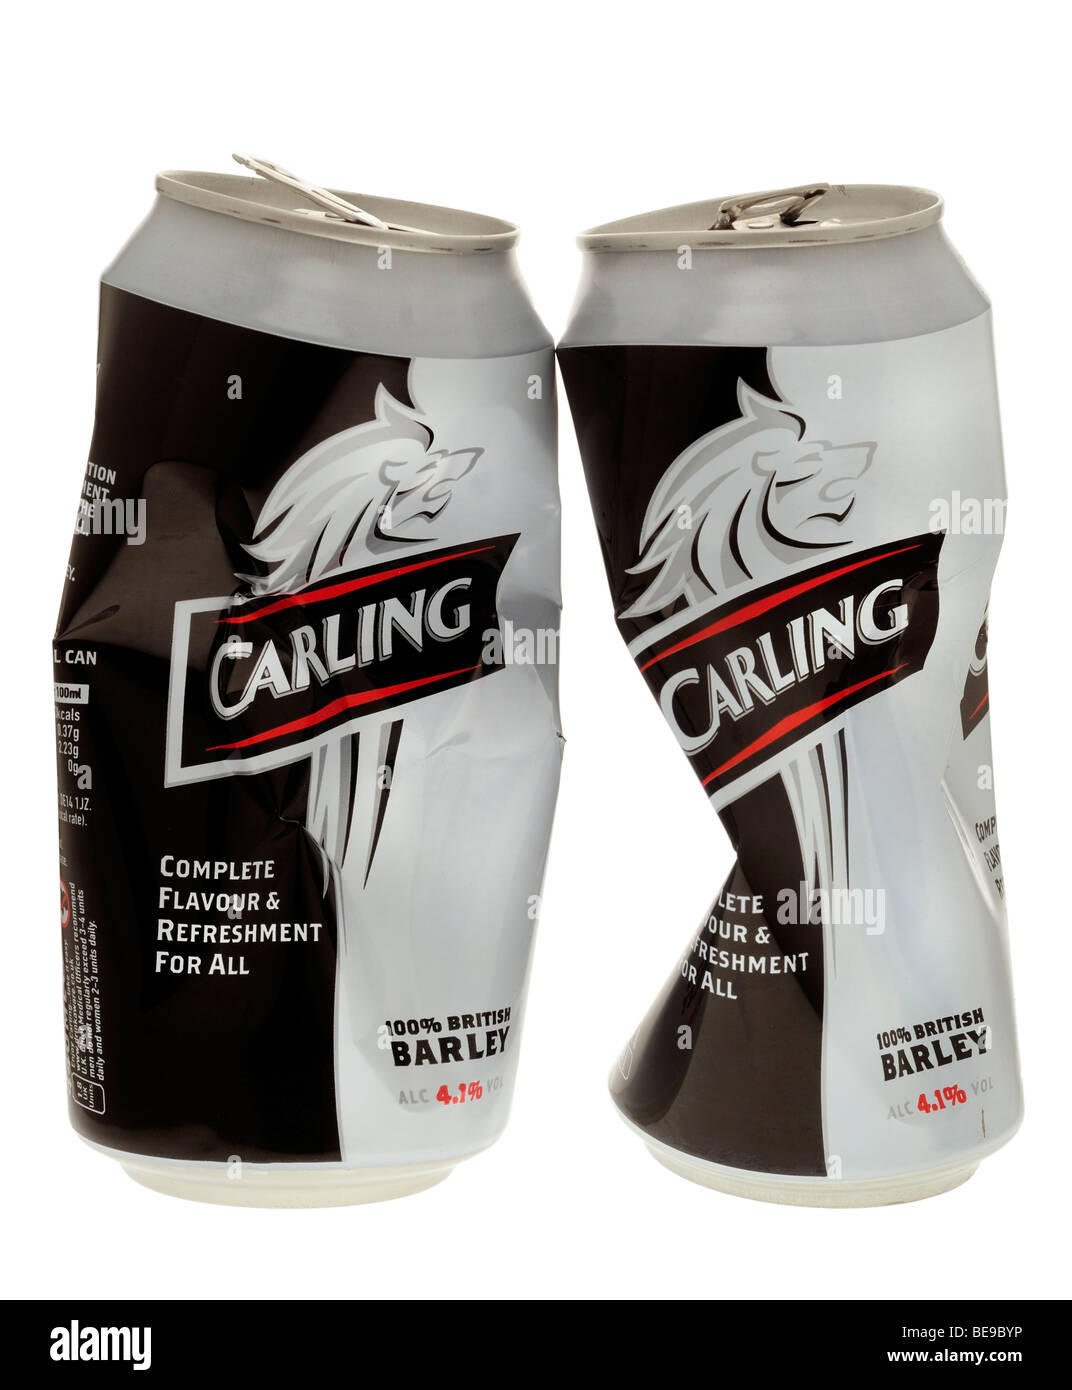 Crushed Empty Cans of Carling Lager. - Stock Image